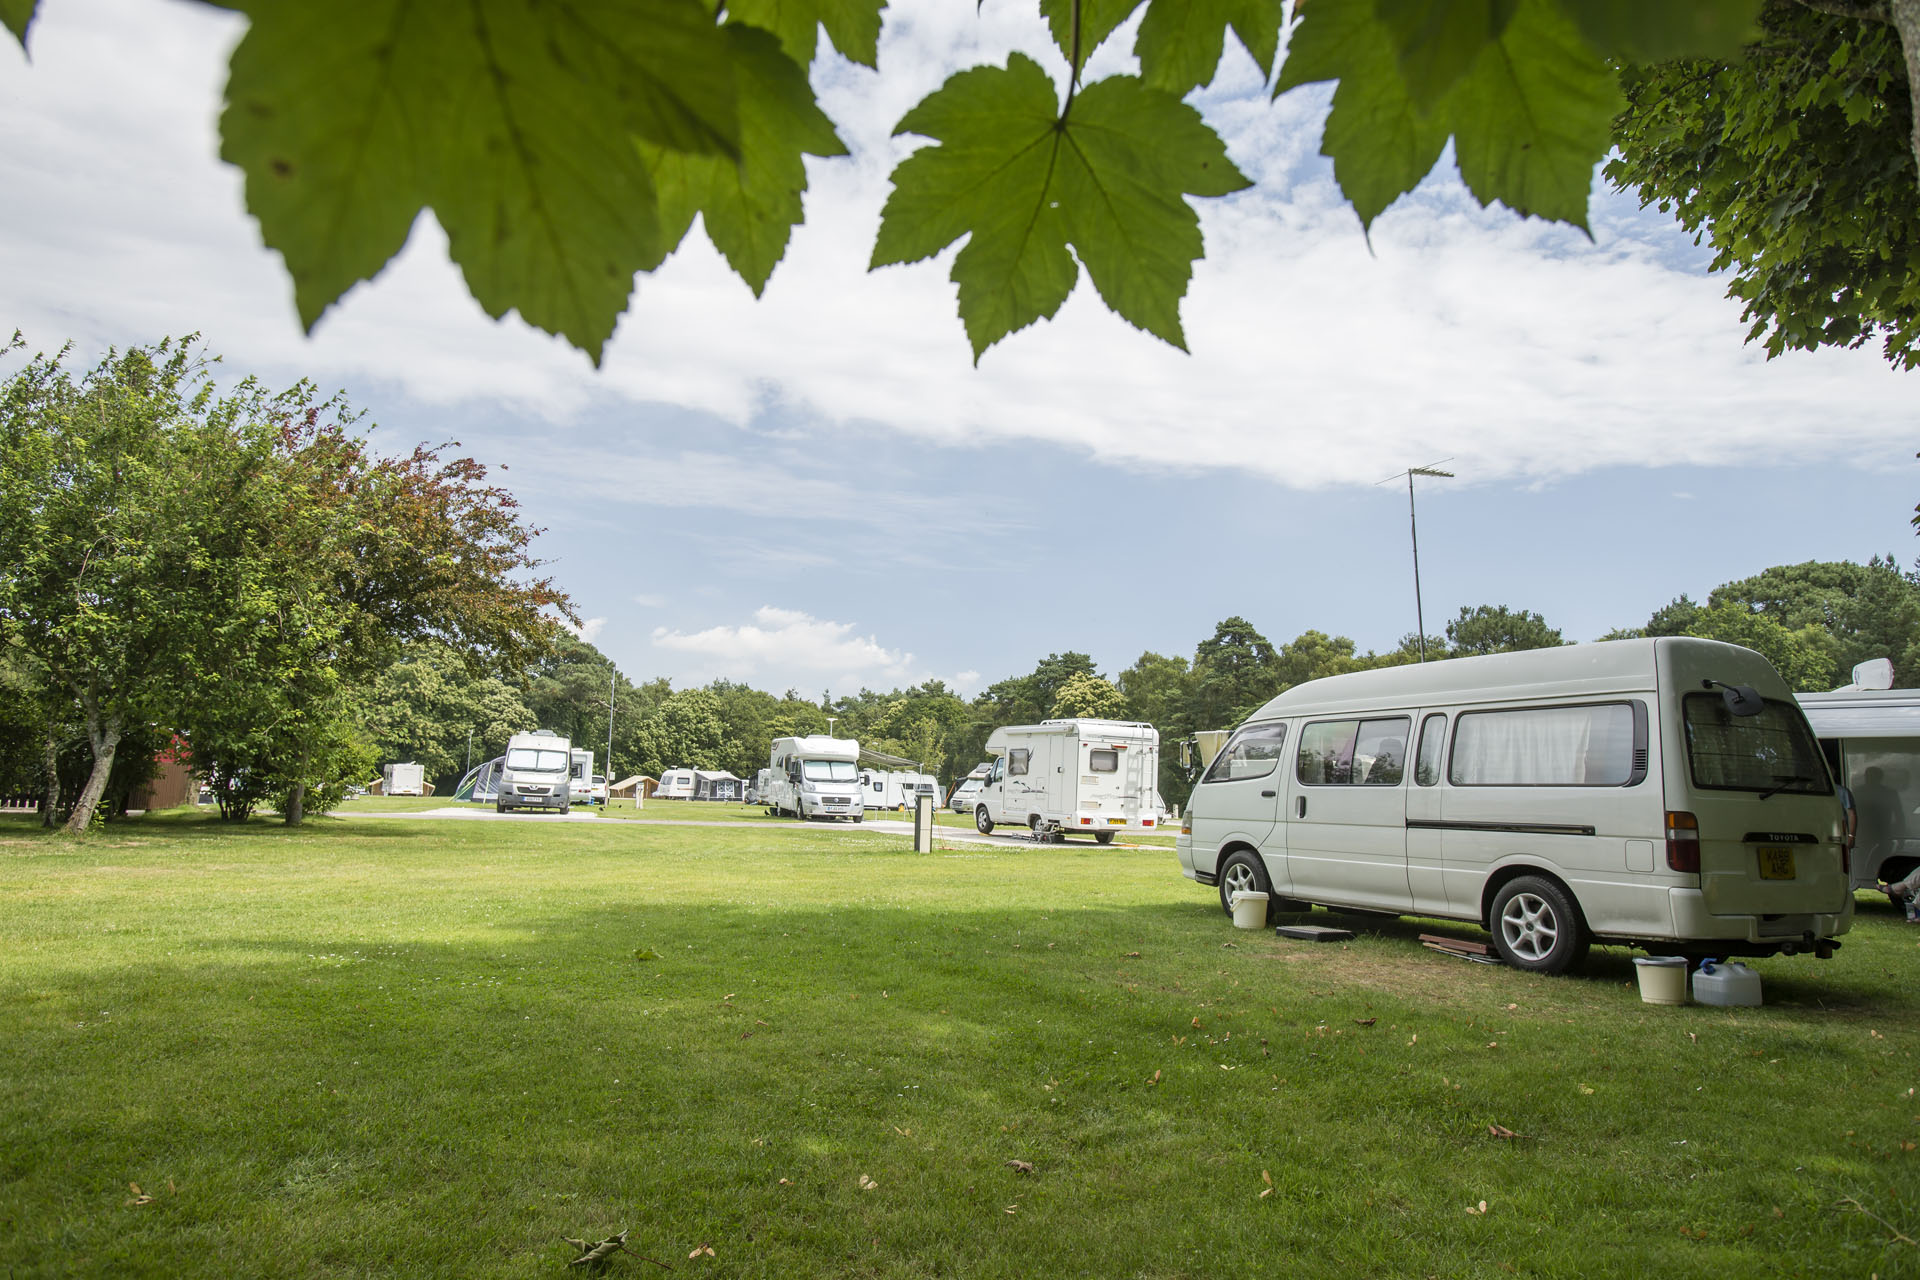 Dingwall - Camping and Caravanning Club Site - The Camping